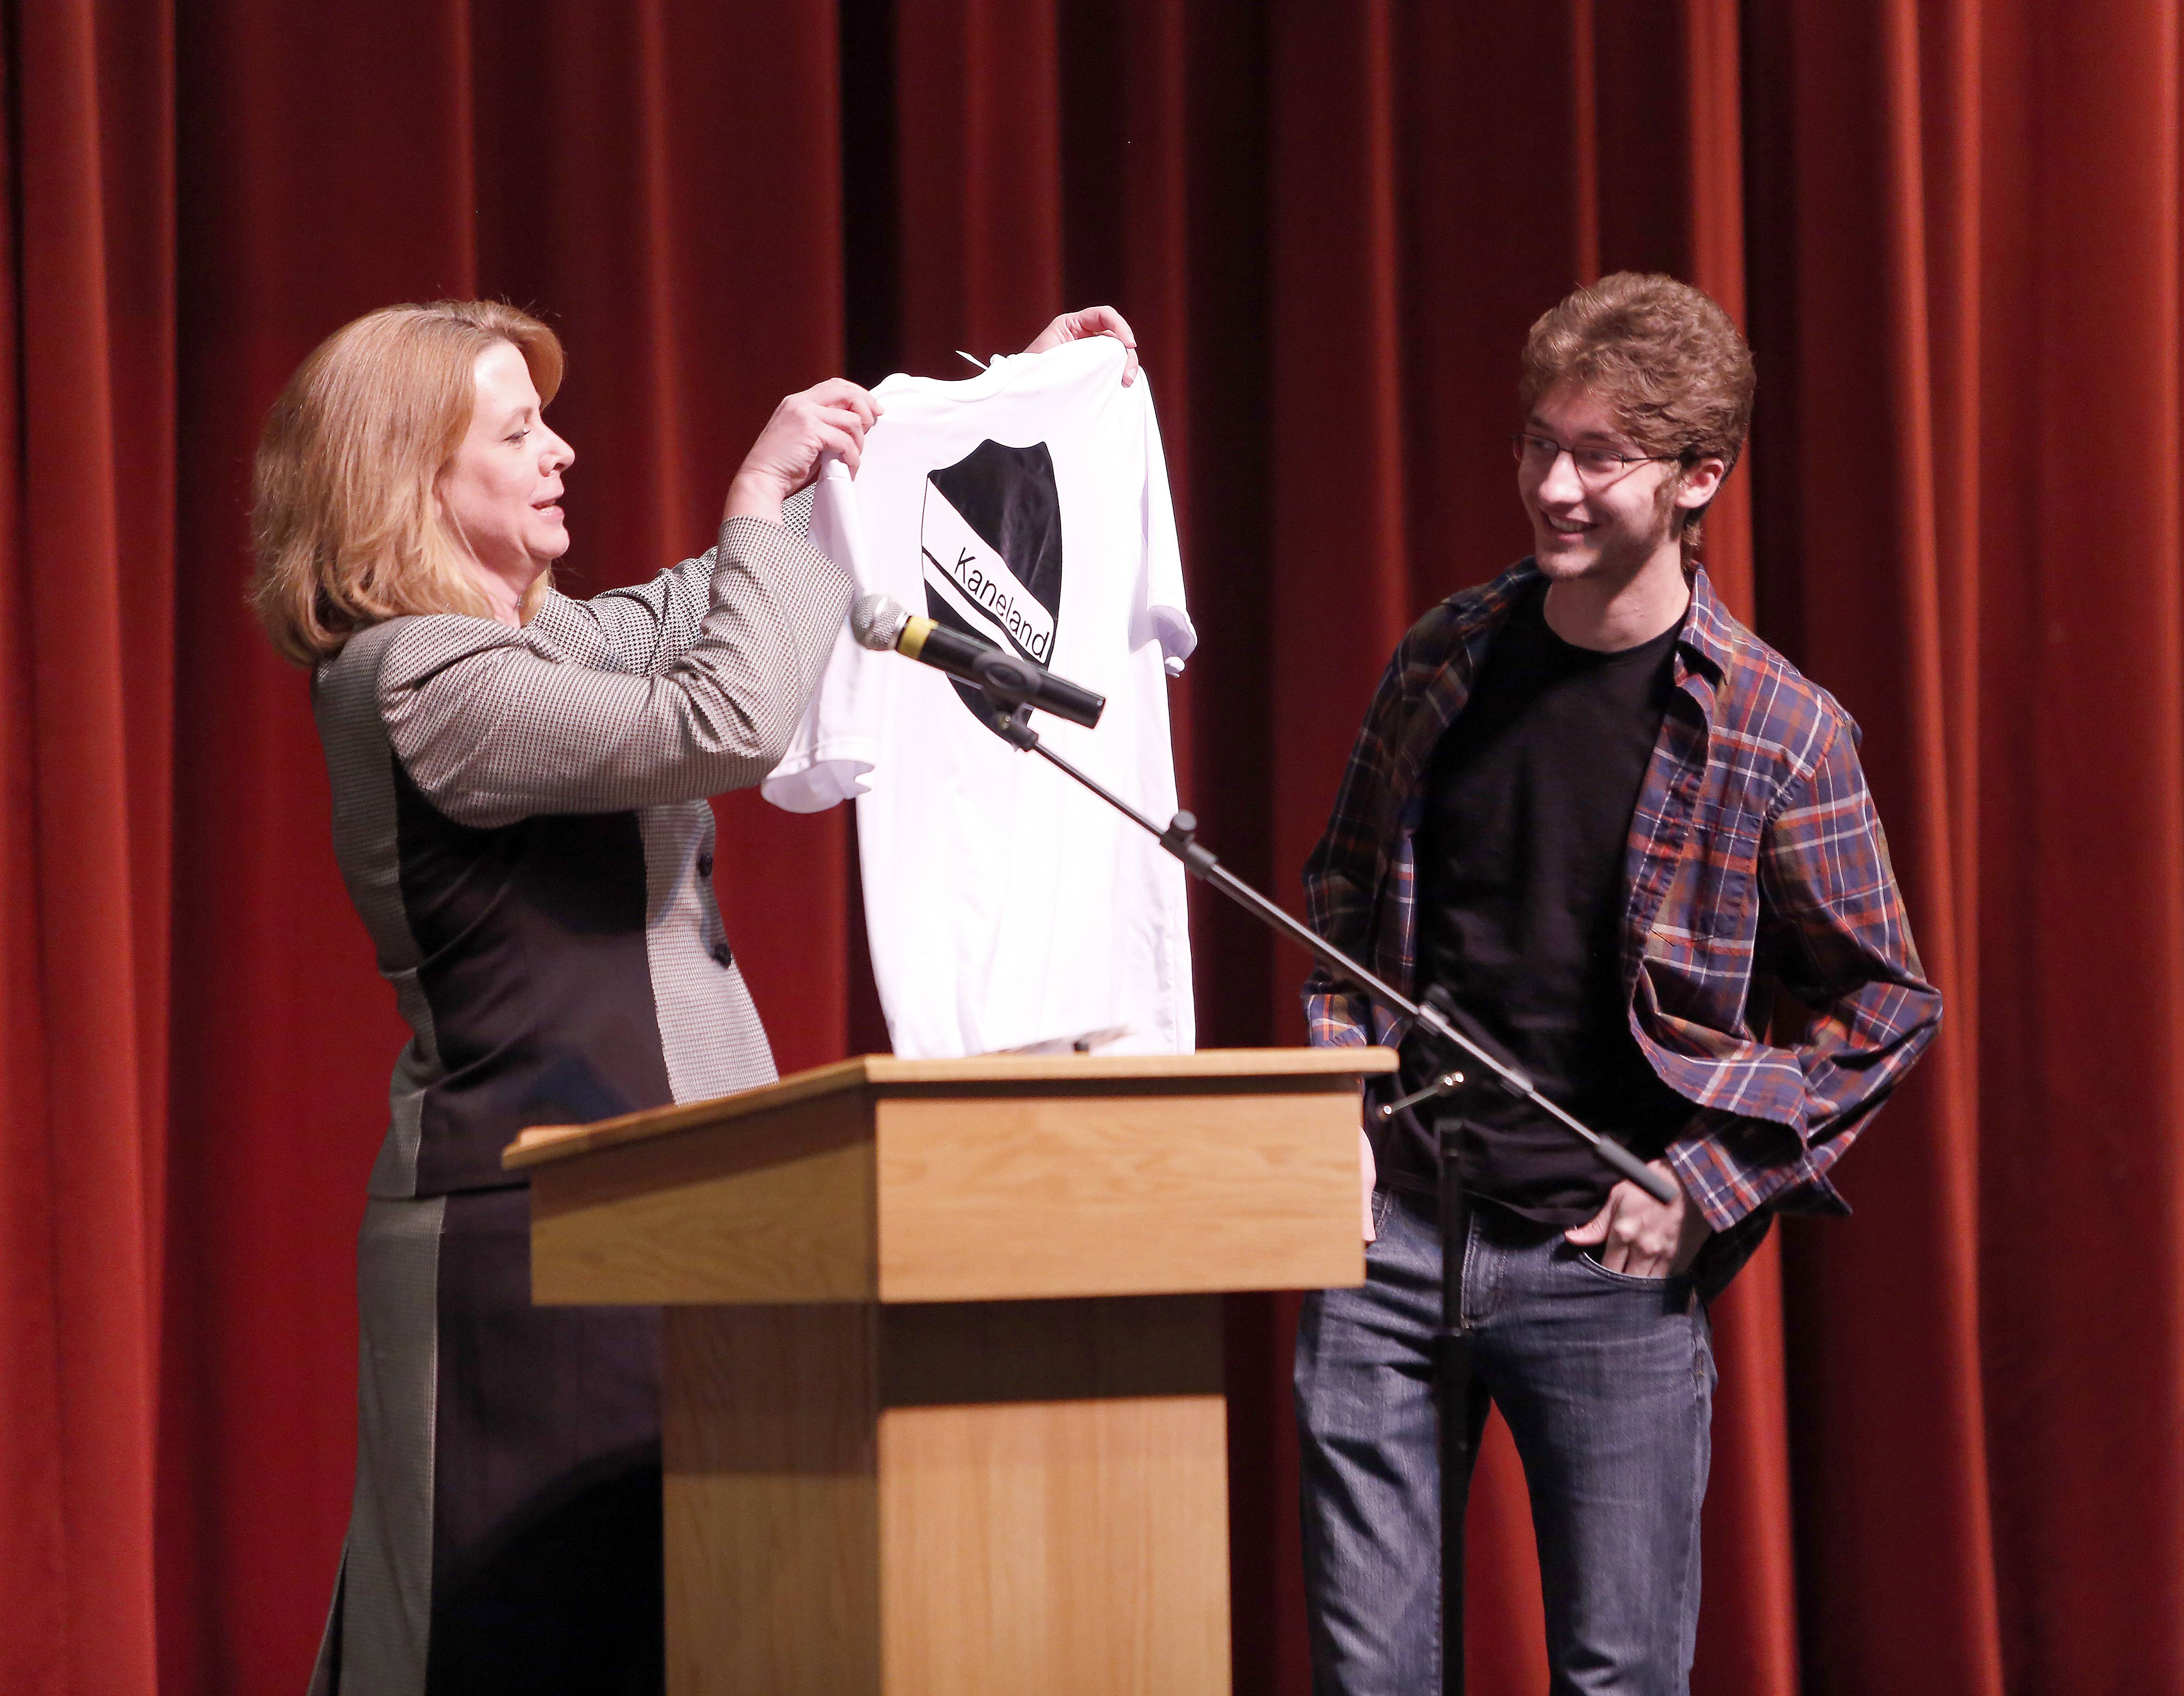 Kaneland High School Principal Jill Maras acknowledges senior Ethan Witt, who scored a perfect 36 on his ACT. The shirt has his name and score on the back, like a sports jersey.